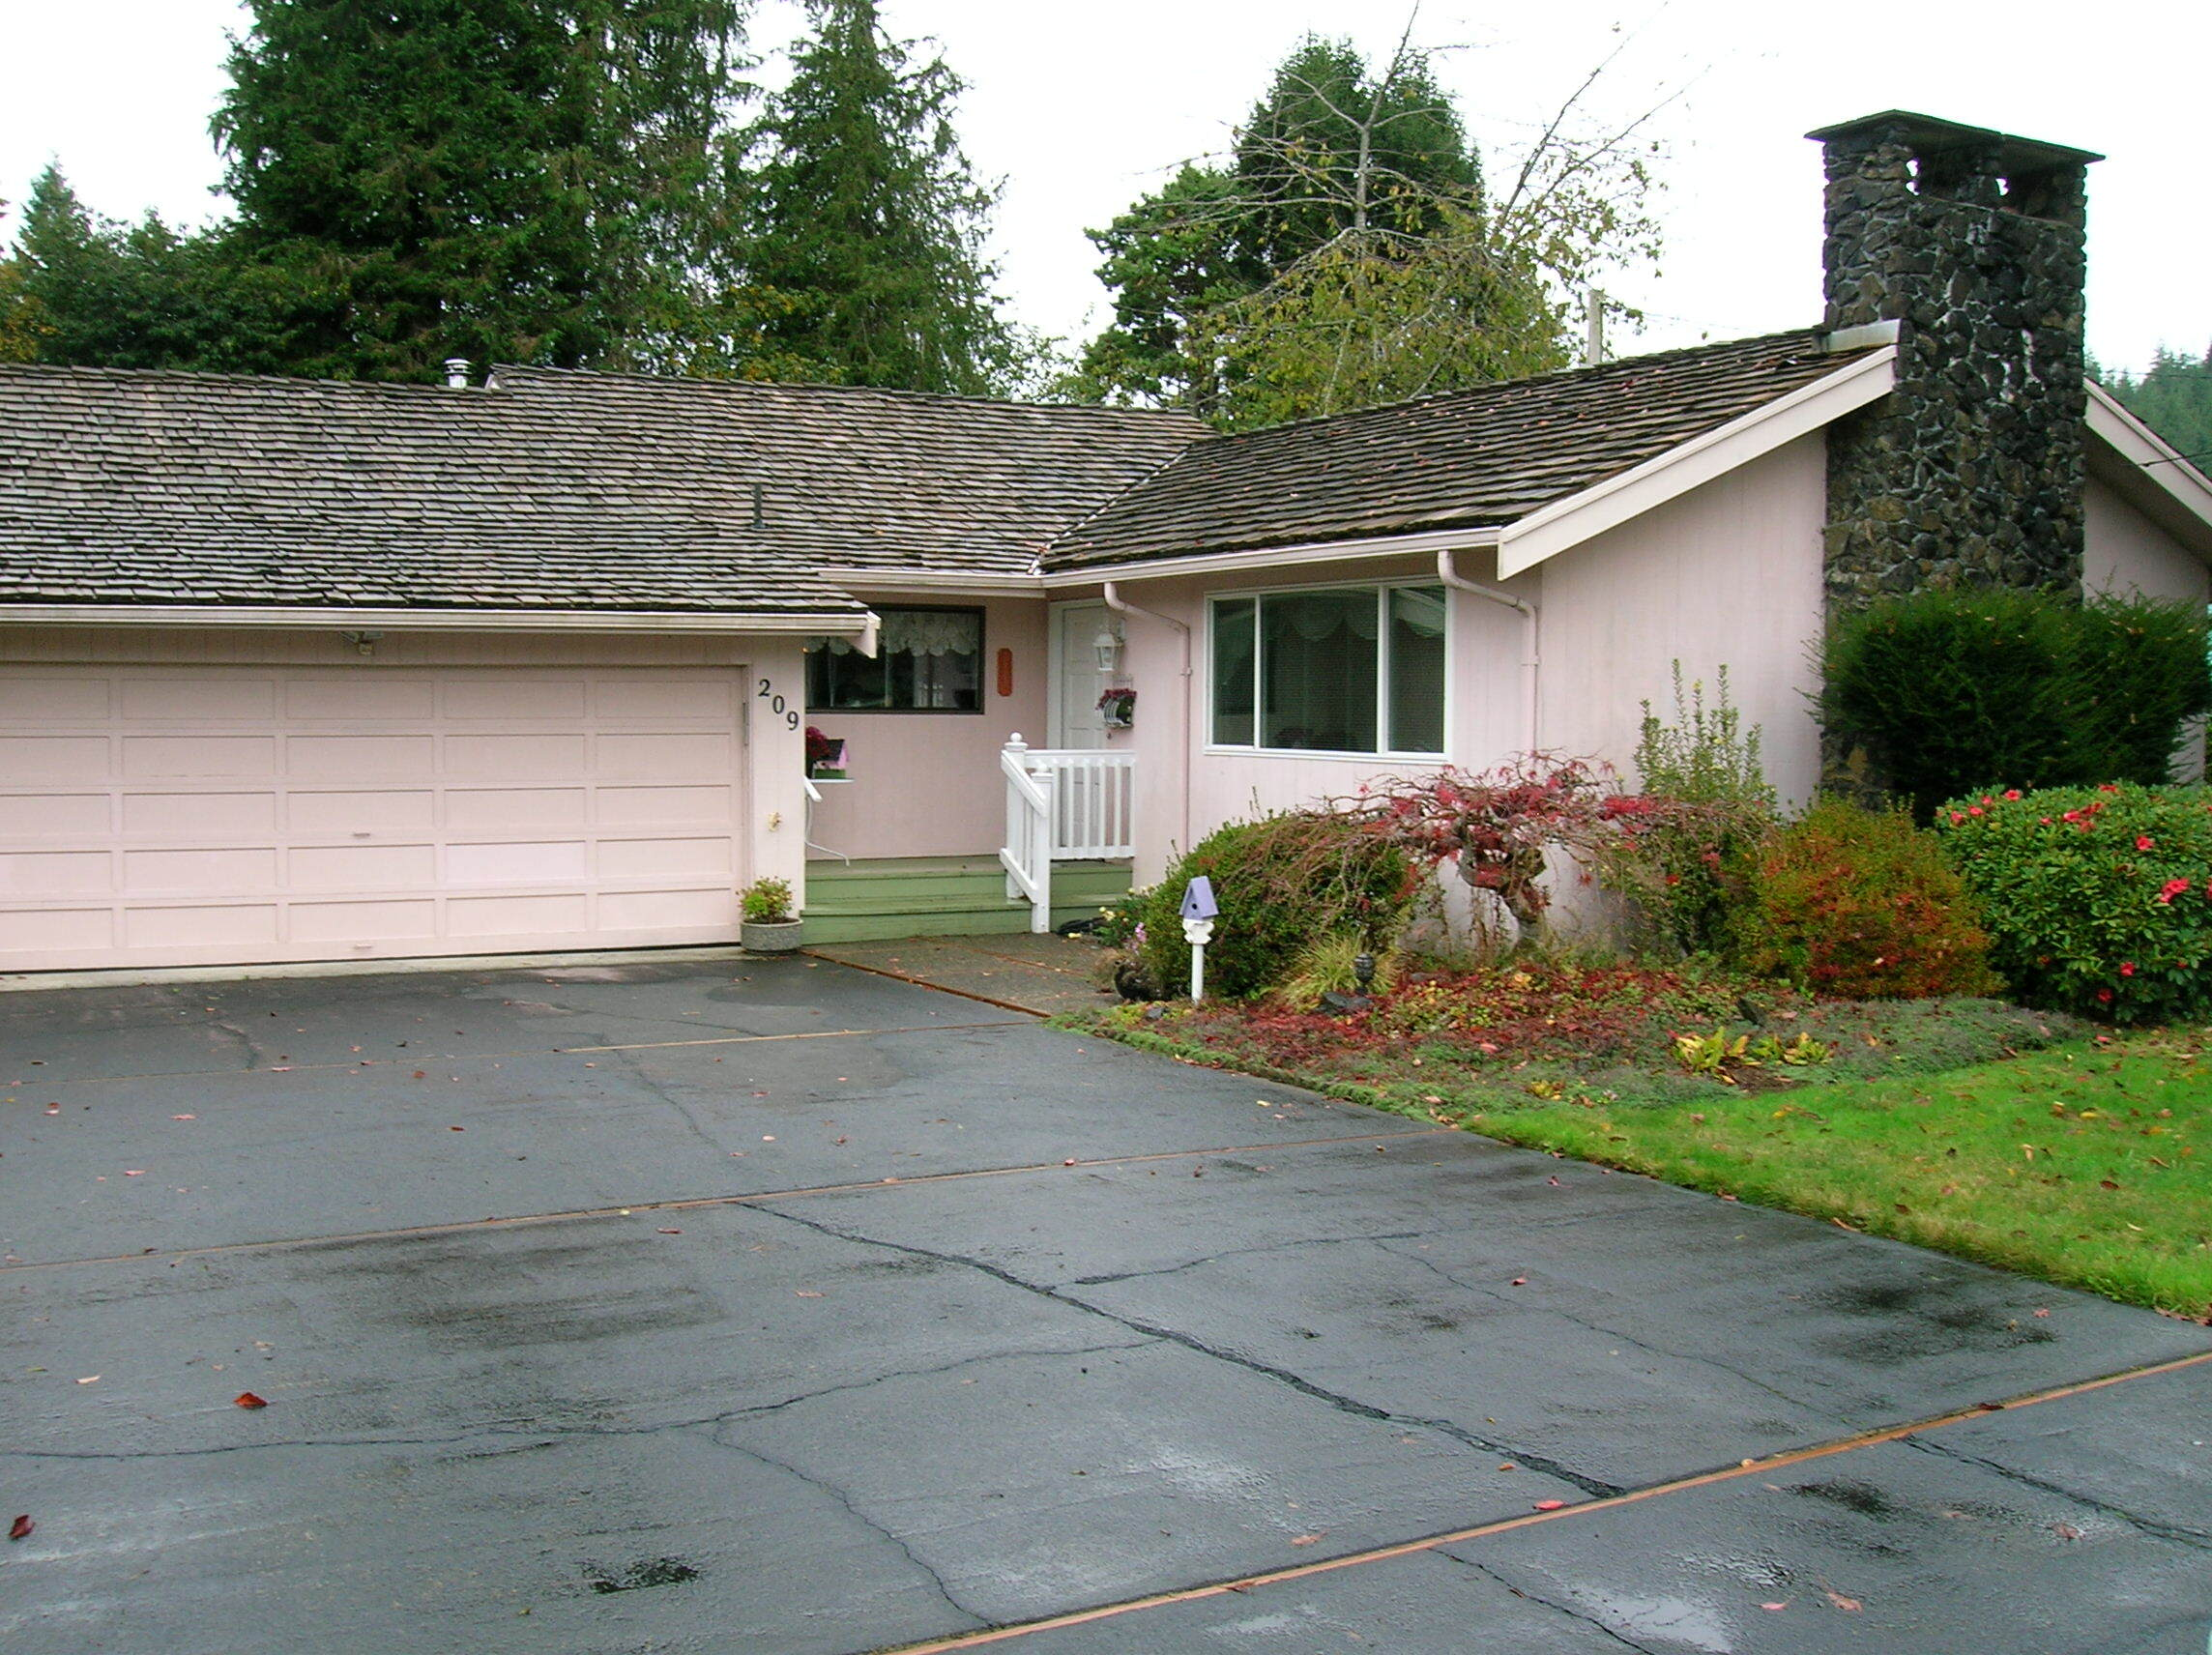 209 Old Hill Rd, Aberdeen, WA - USA (photo 1)